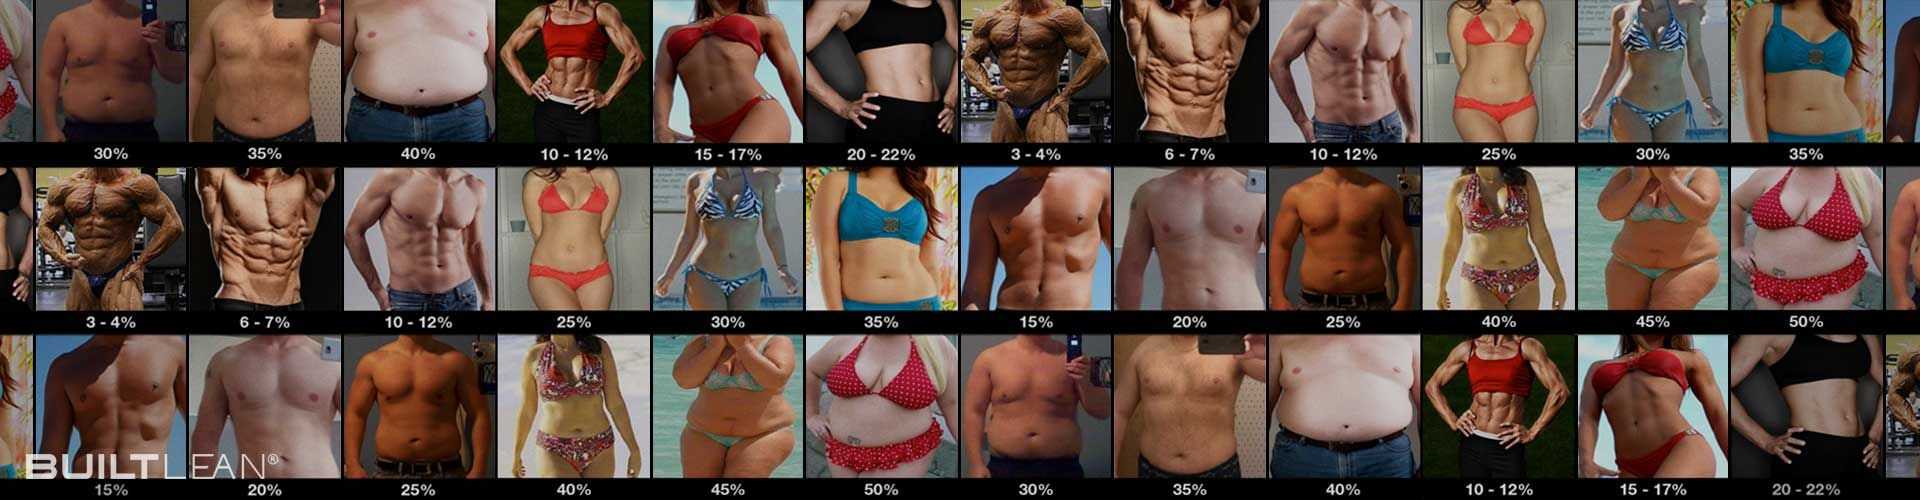 Though you Men Fat What Like Percentage Women Of the real life